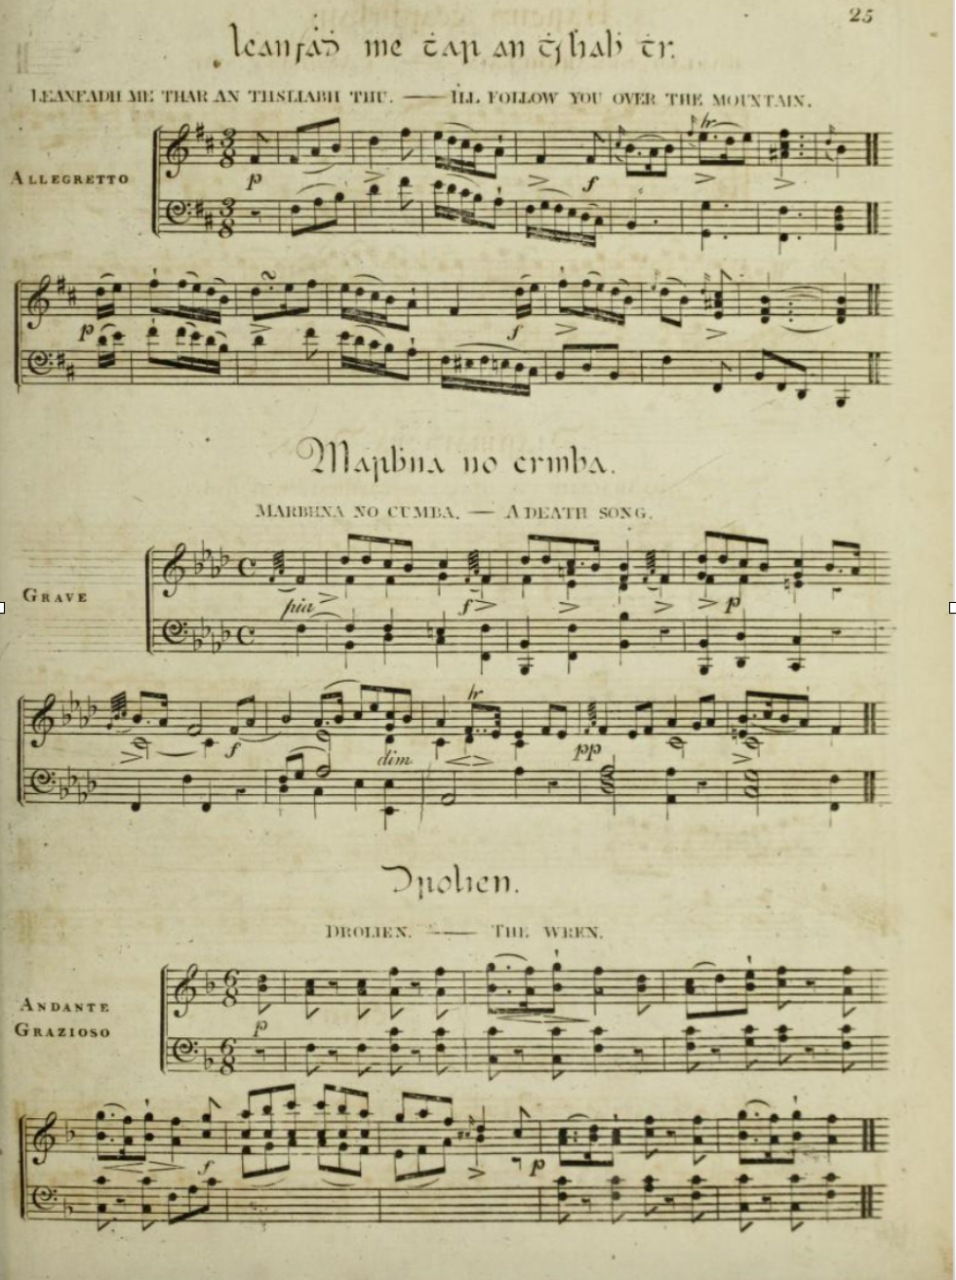 1809 printed piano version p.25